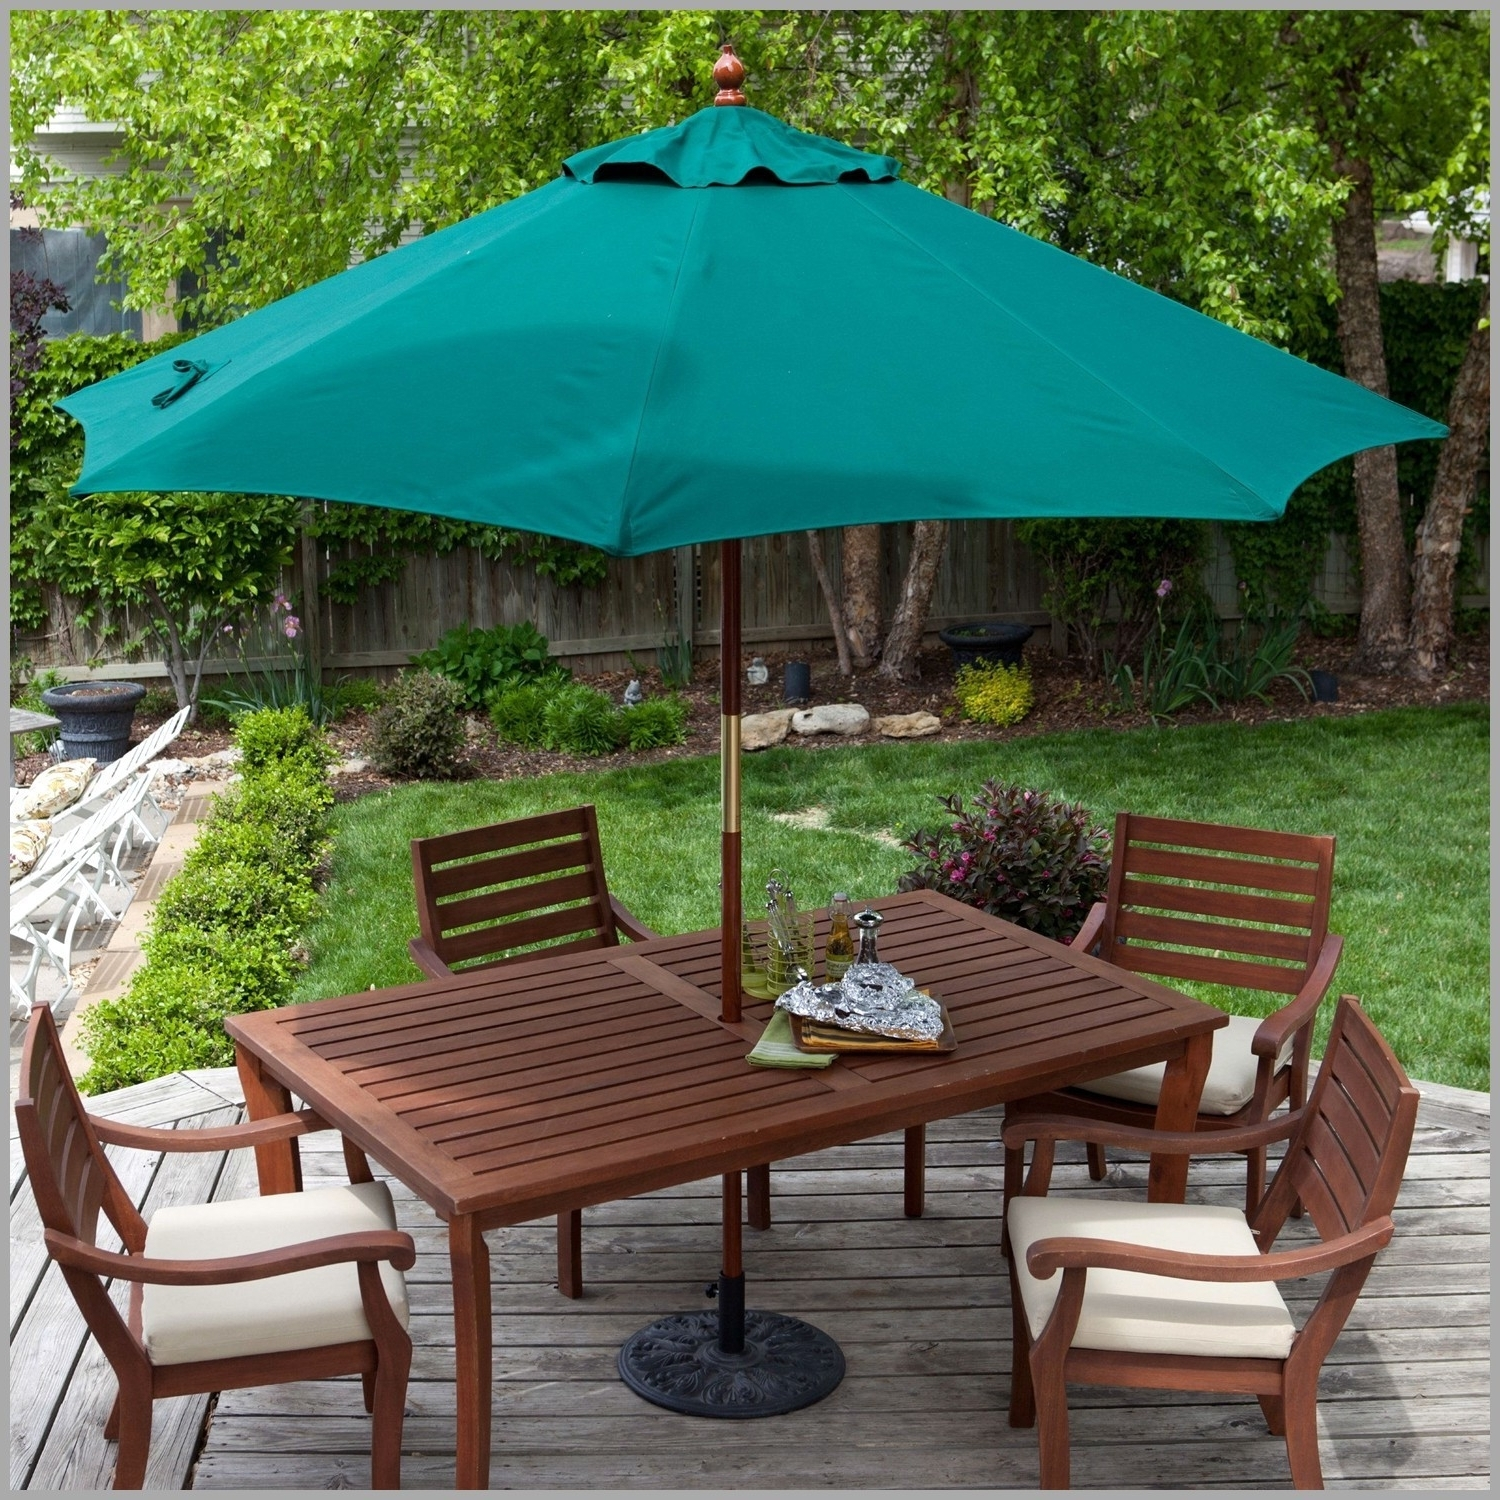 8 Ft Patio Umbrella Best Of Cheap Patio Umbrellas Luxury Have To In Well Known Cheap Patio Umbrellas (View 1 of 20)